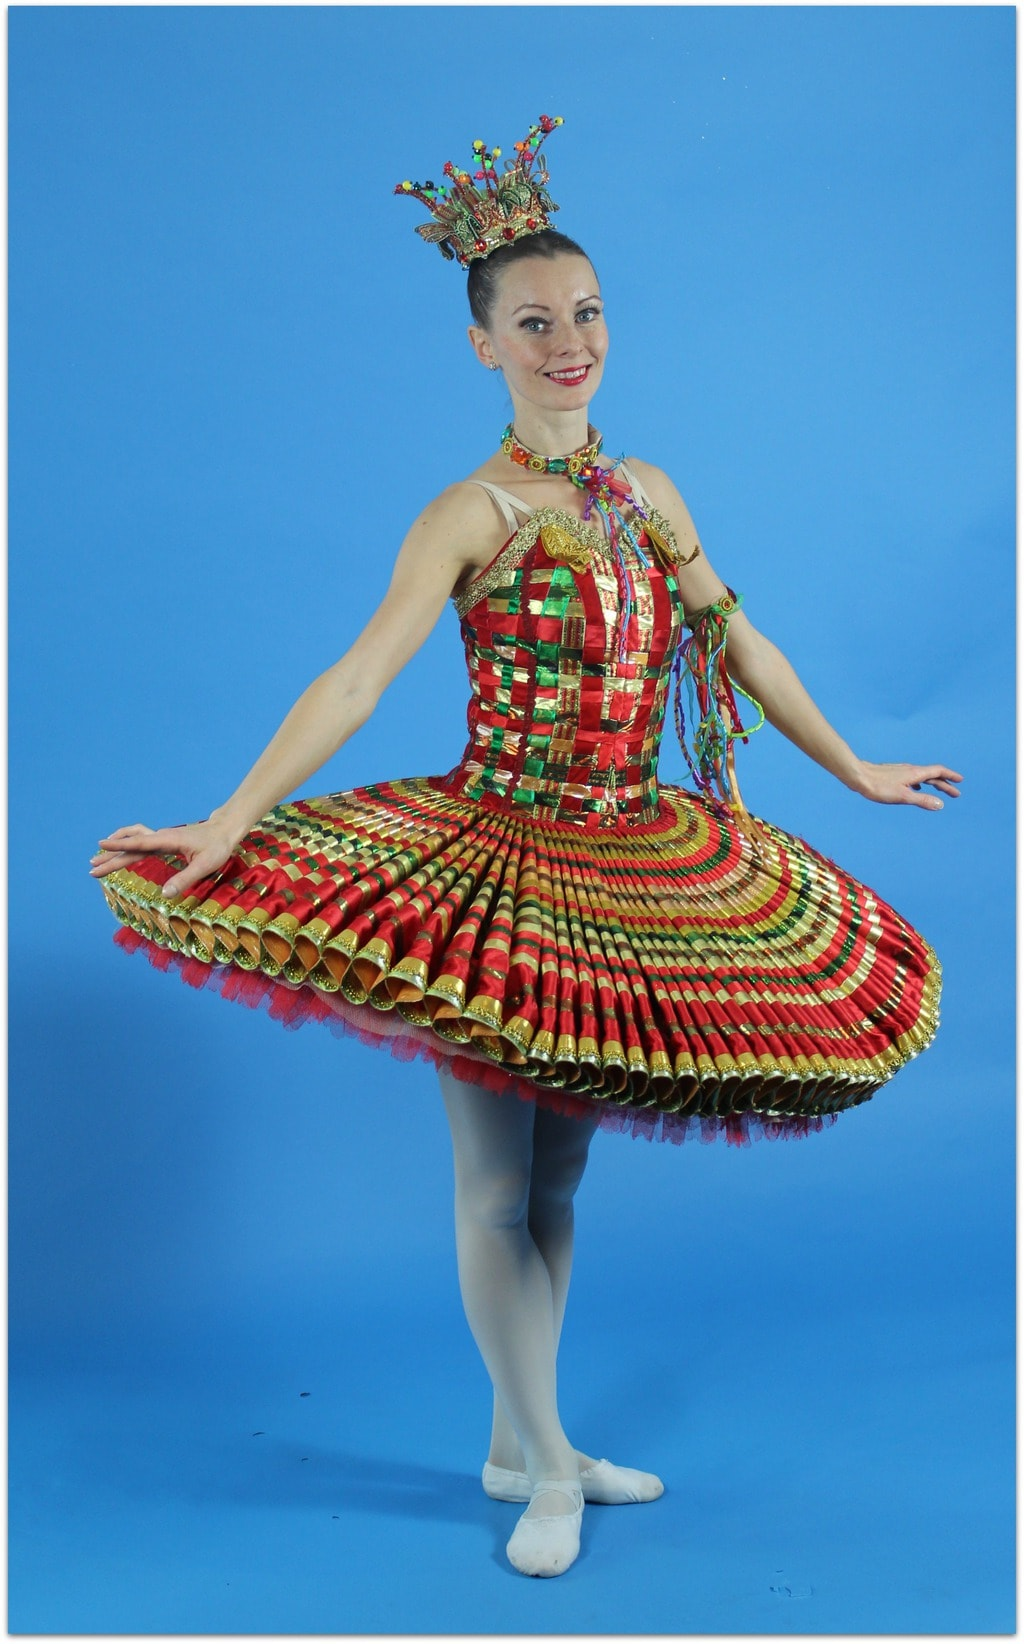 The Great Russian Nutcracker Kissy Doll